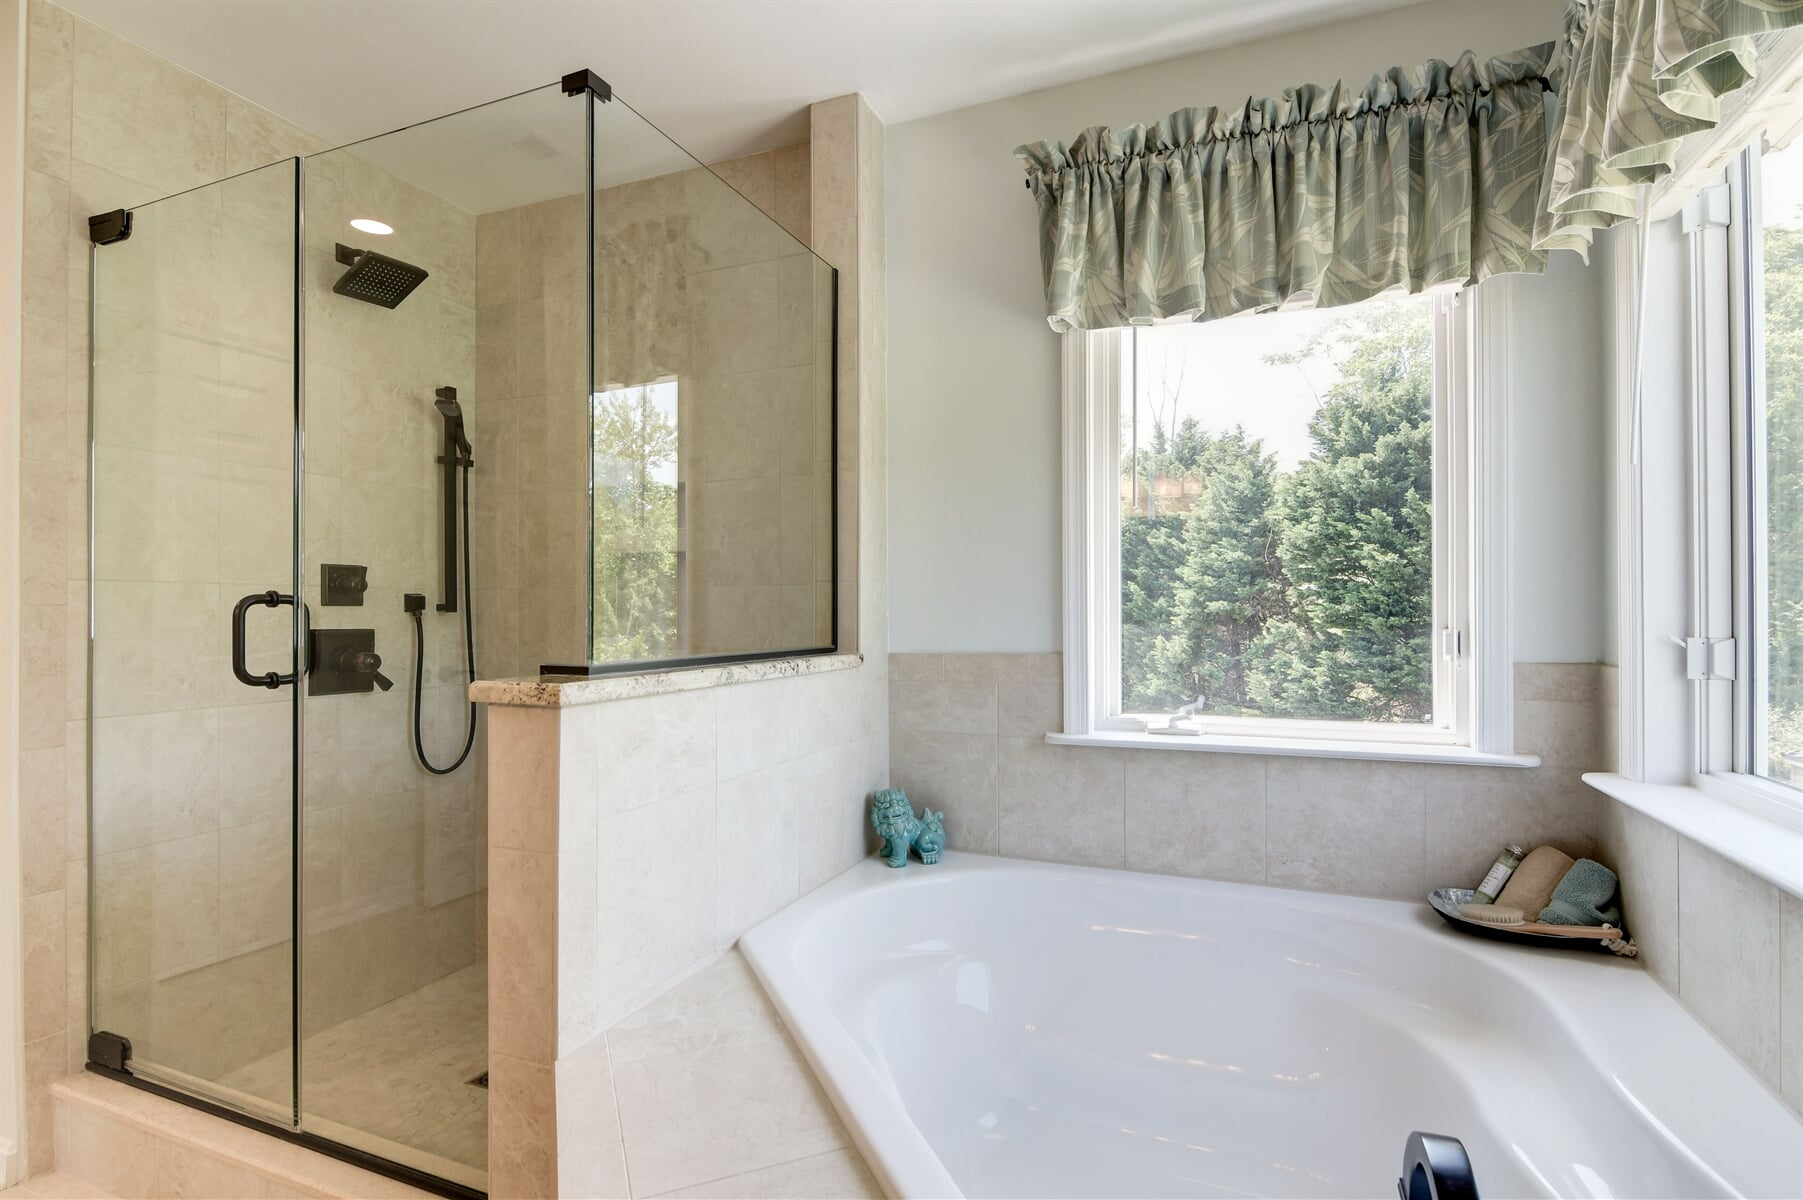 Bathroom remodeling in Sunderland, MD by Southern Maryland Kitchen, Bath, Floors & Design